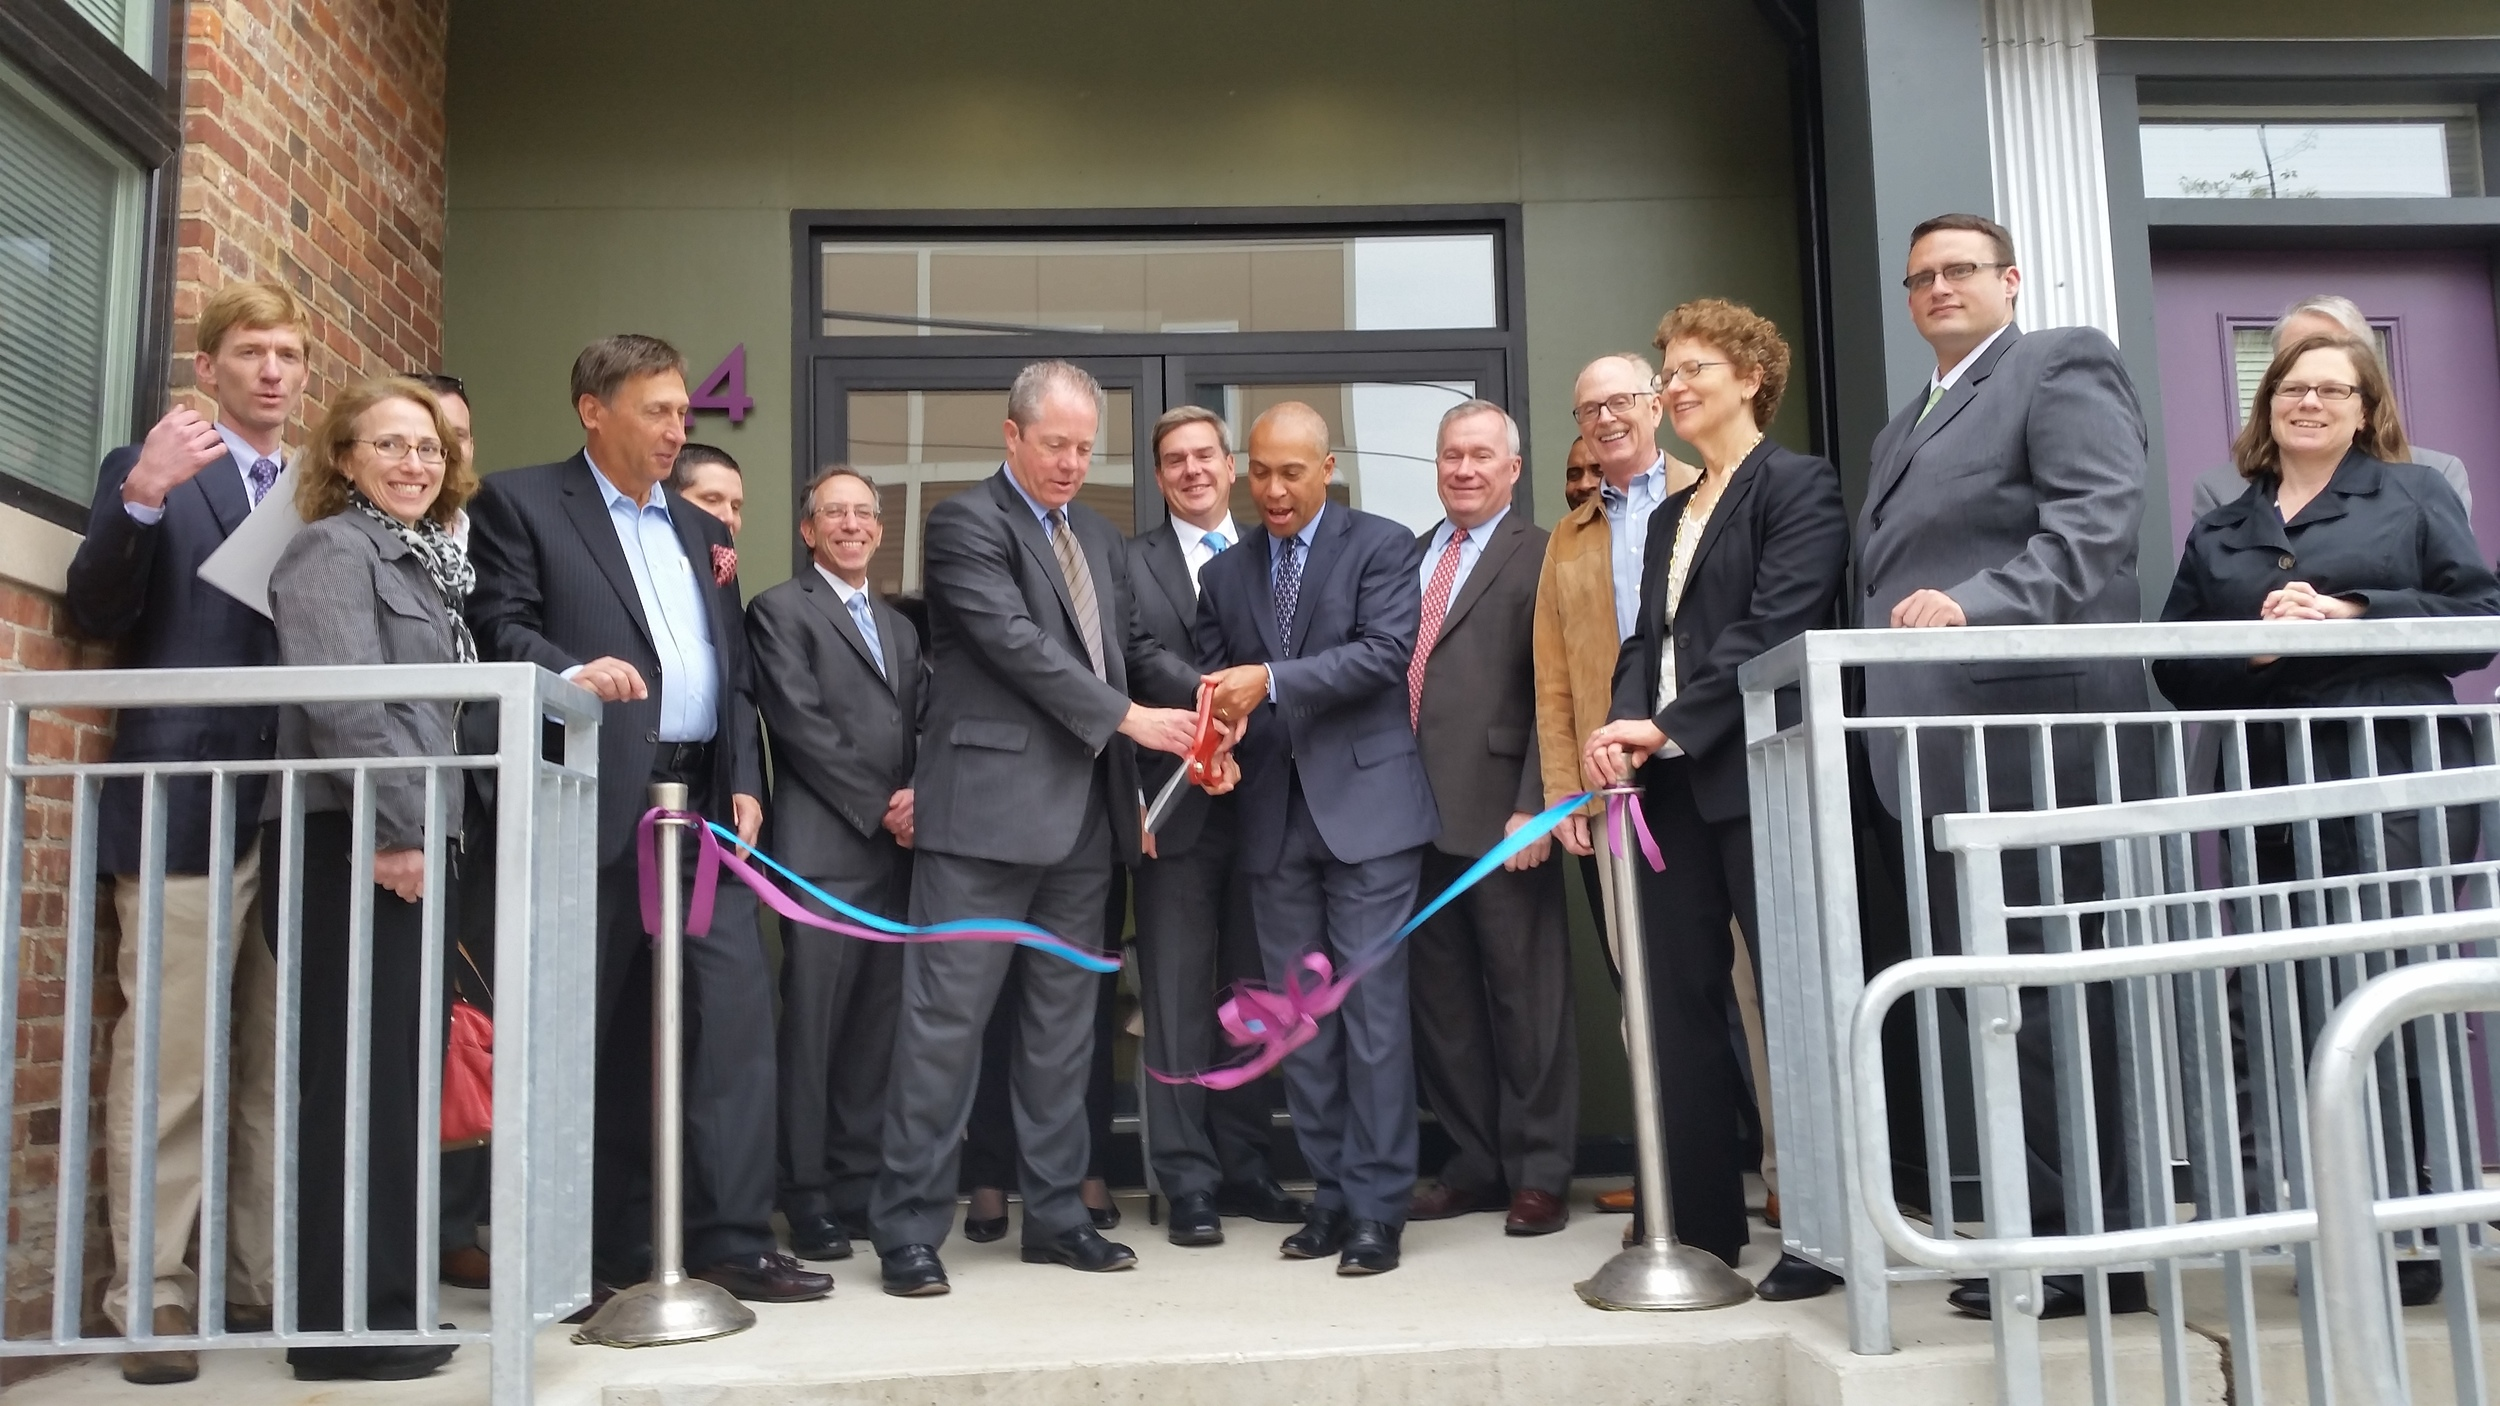 Governor Patrick cuts the Ribbon at the Flats at 44, completed March 2014